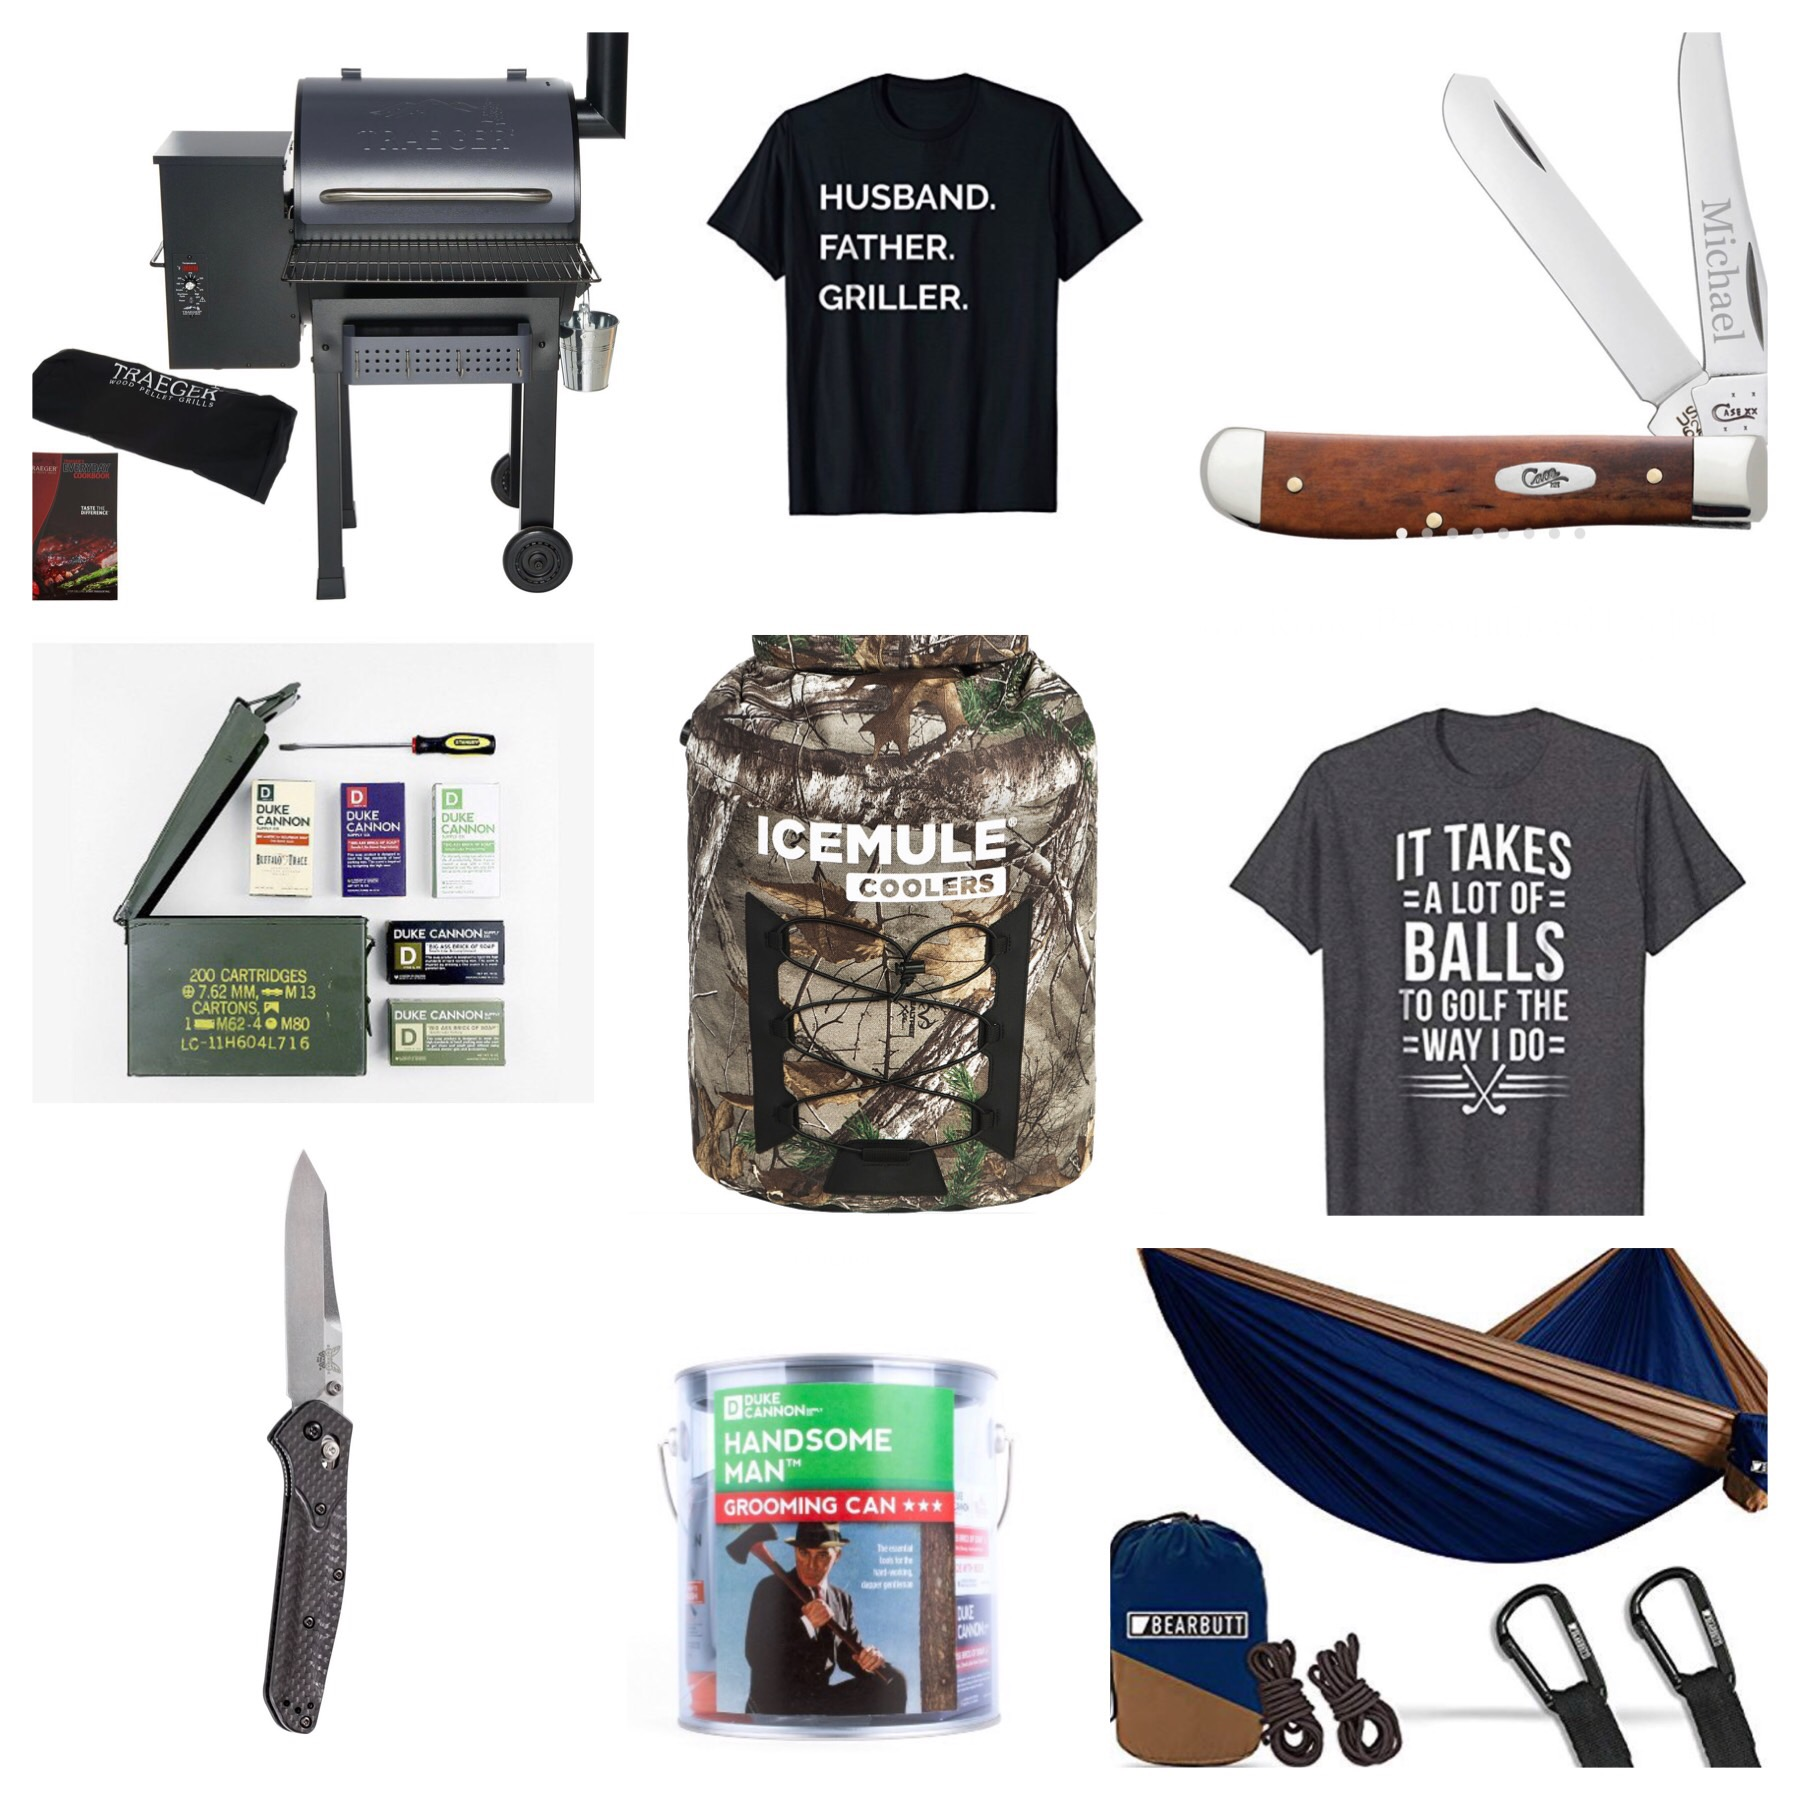 Rob's gift guide for the man's man